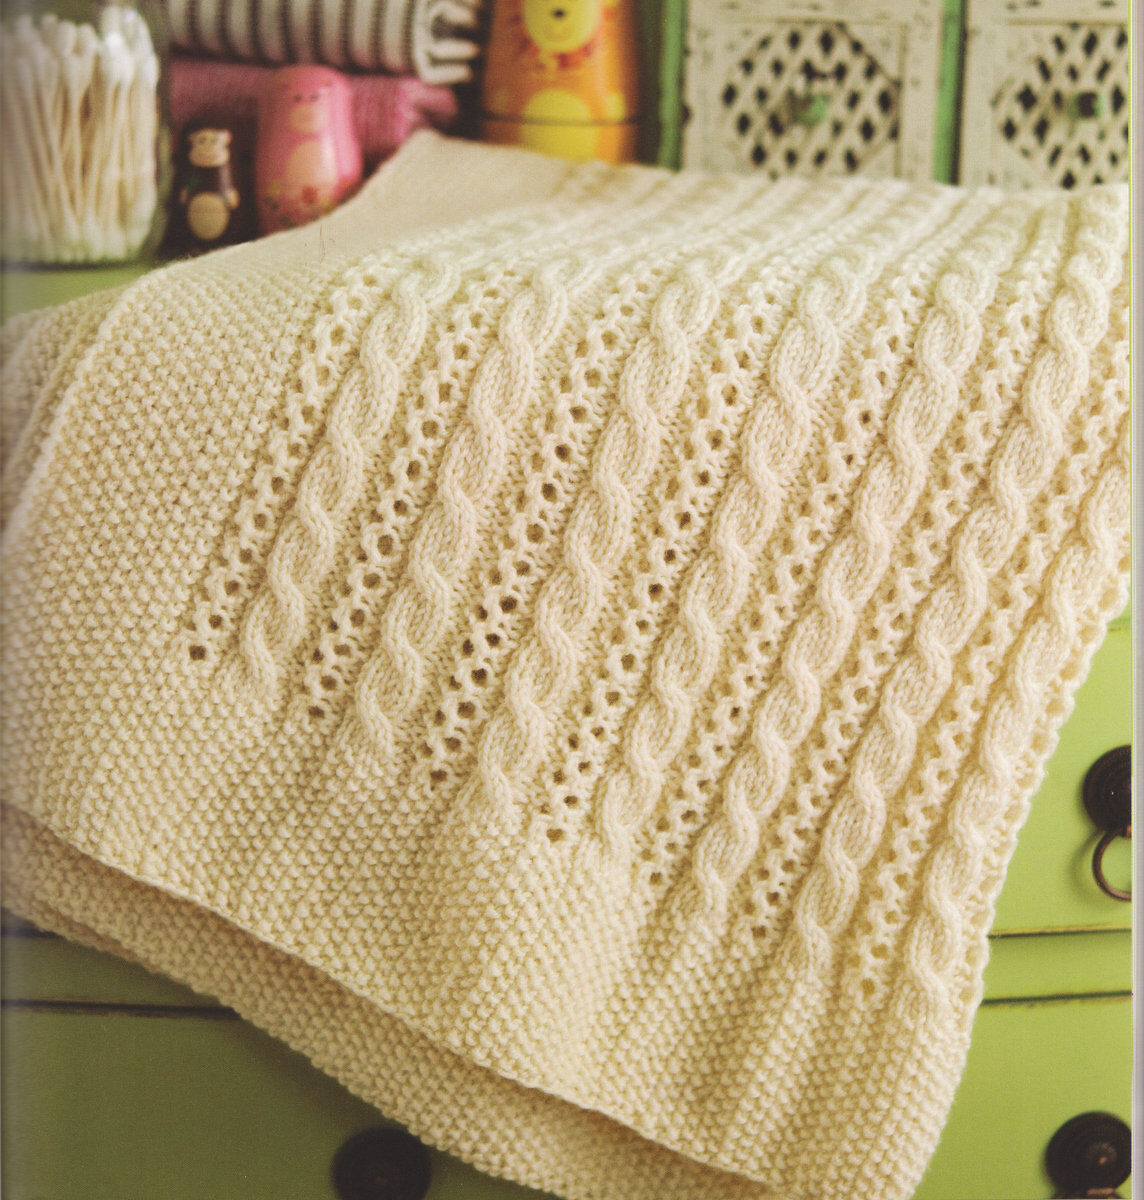 Knitting Pattern Cable Knit Baby Blanket In Dk Merino Wool For Sale Ebay